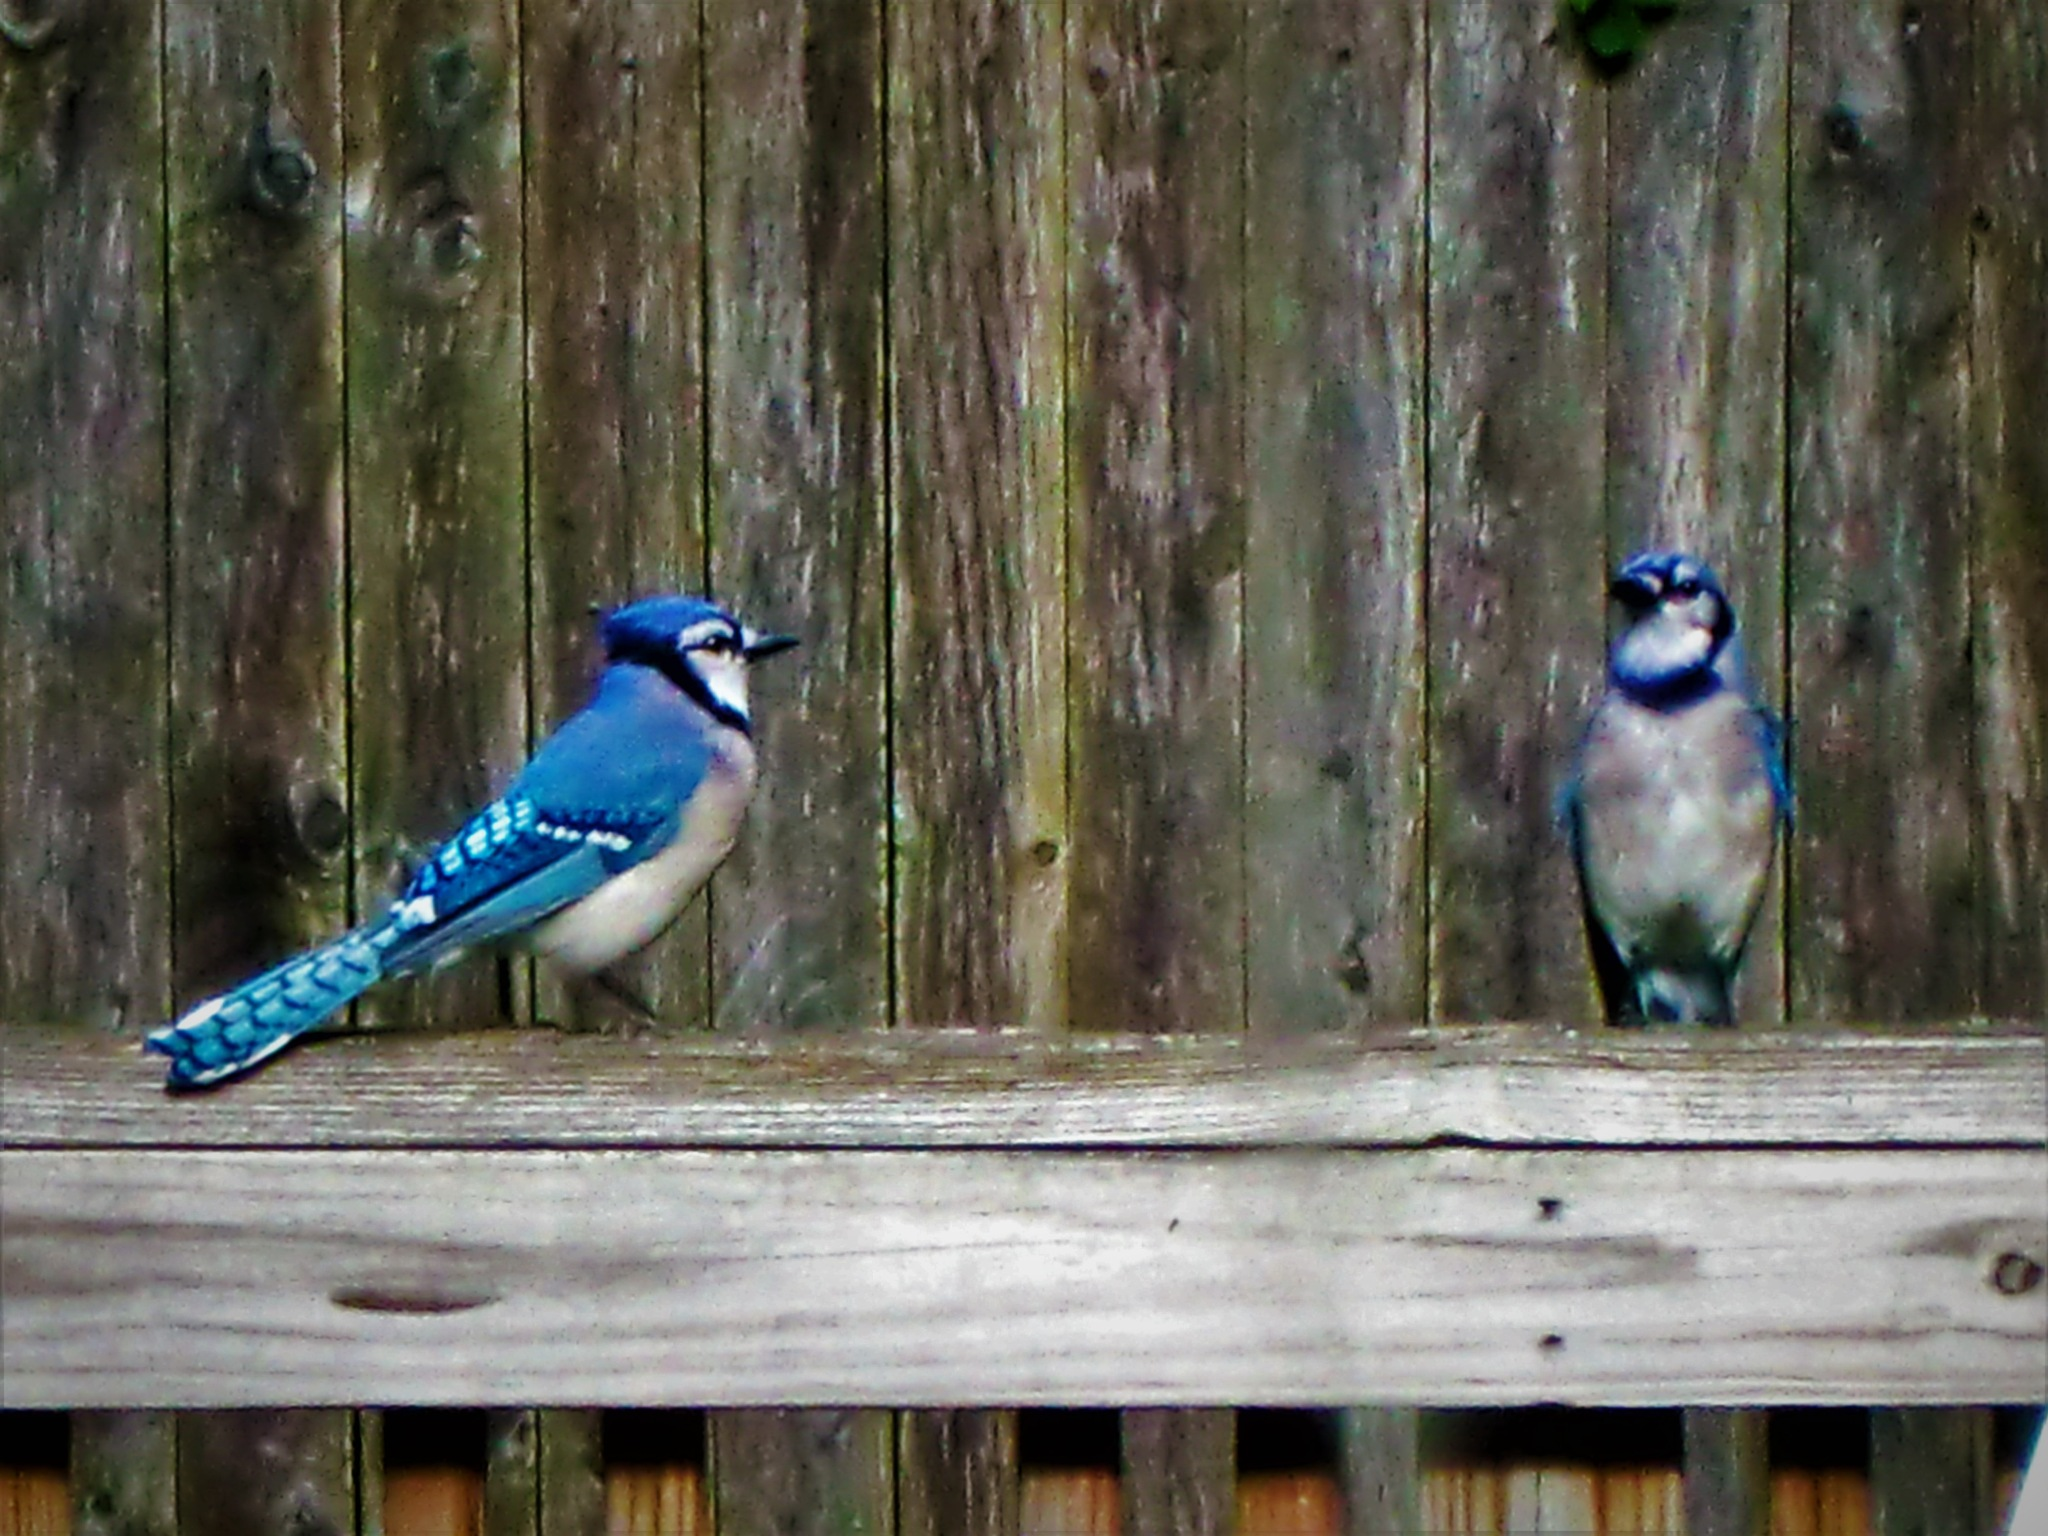 The Dynamic Body Language of a Bluejay Couple by RichardJTreitner